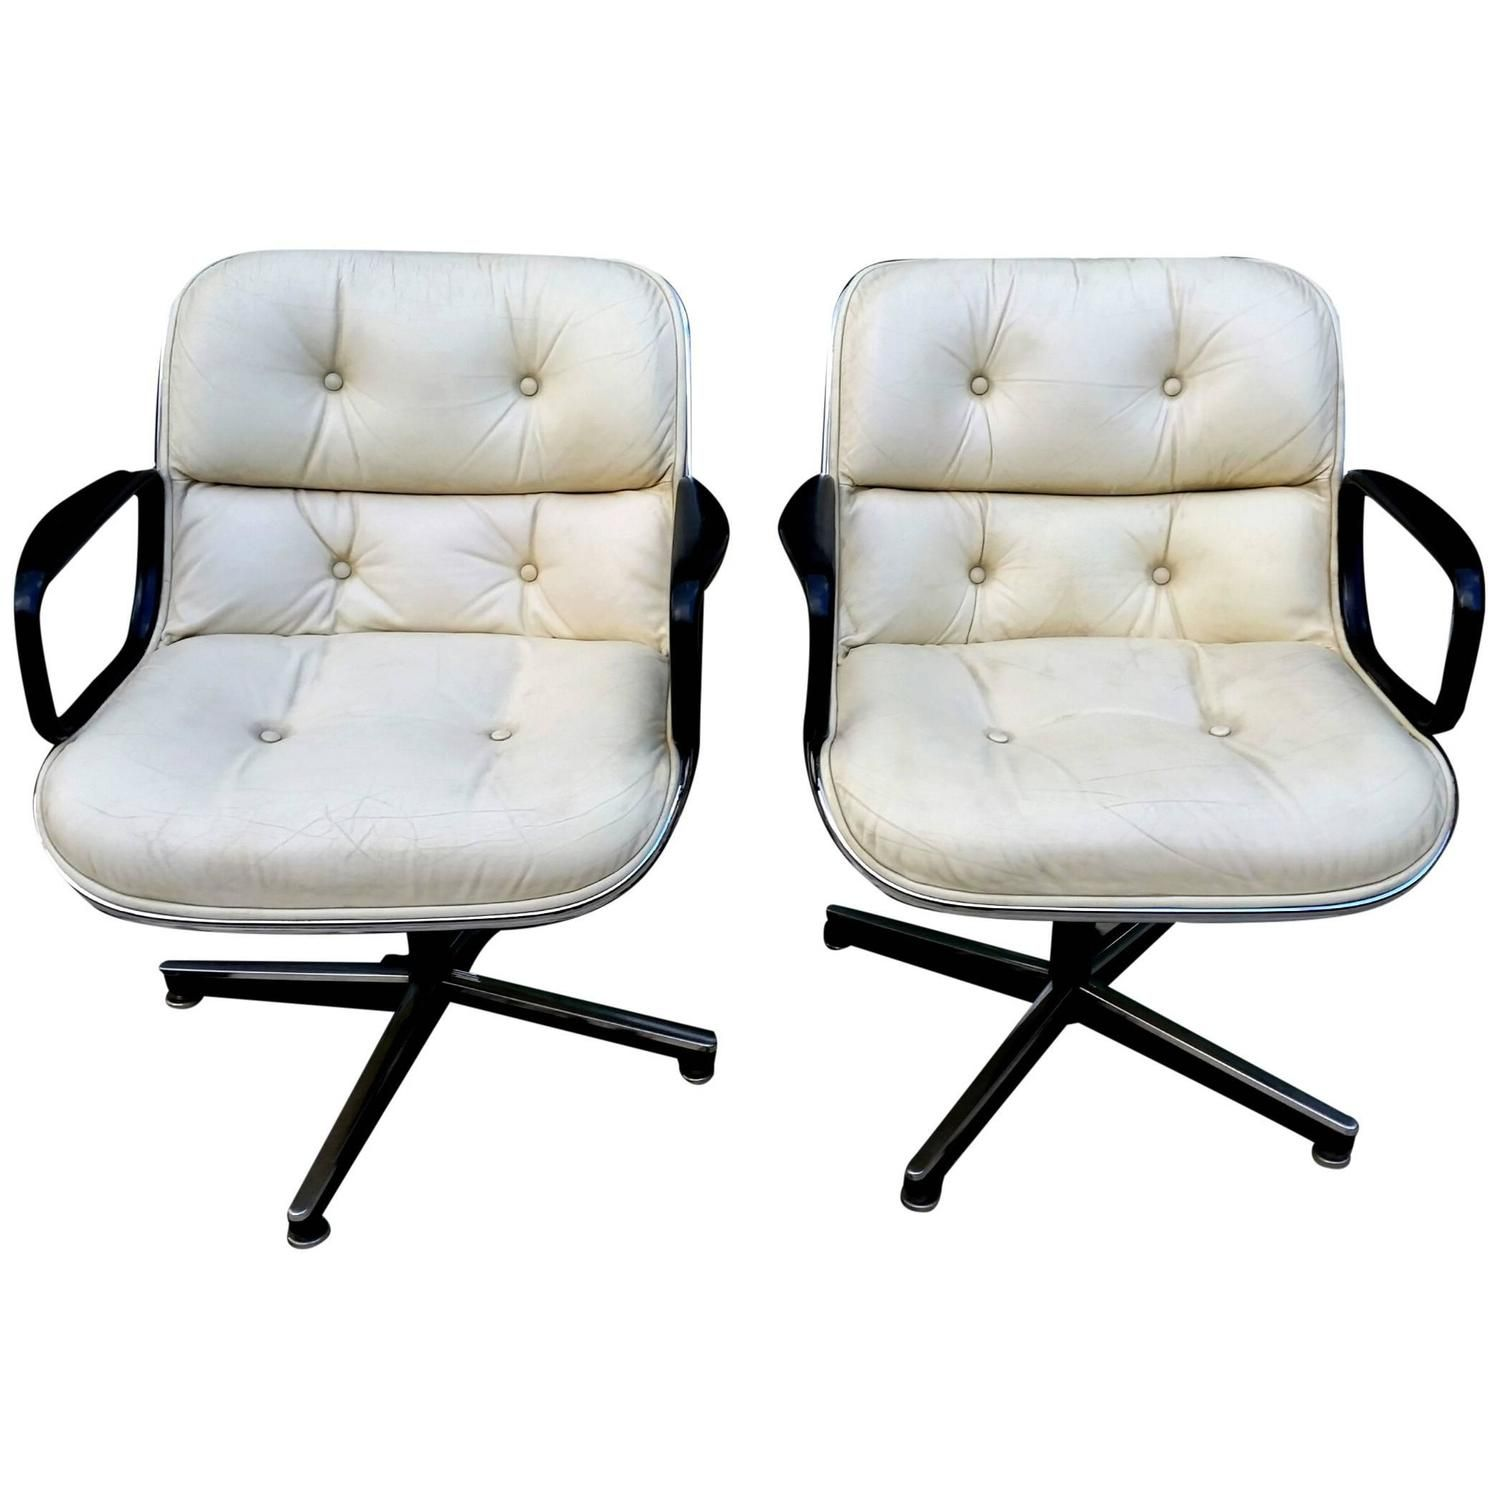 Pair Of Charles Pollock Executive Chair For Knoll In All White Leather,  1960s